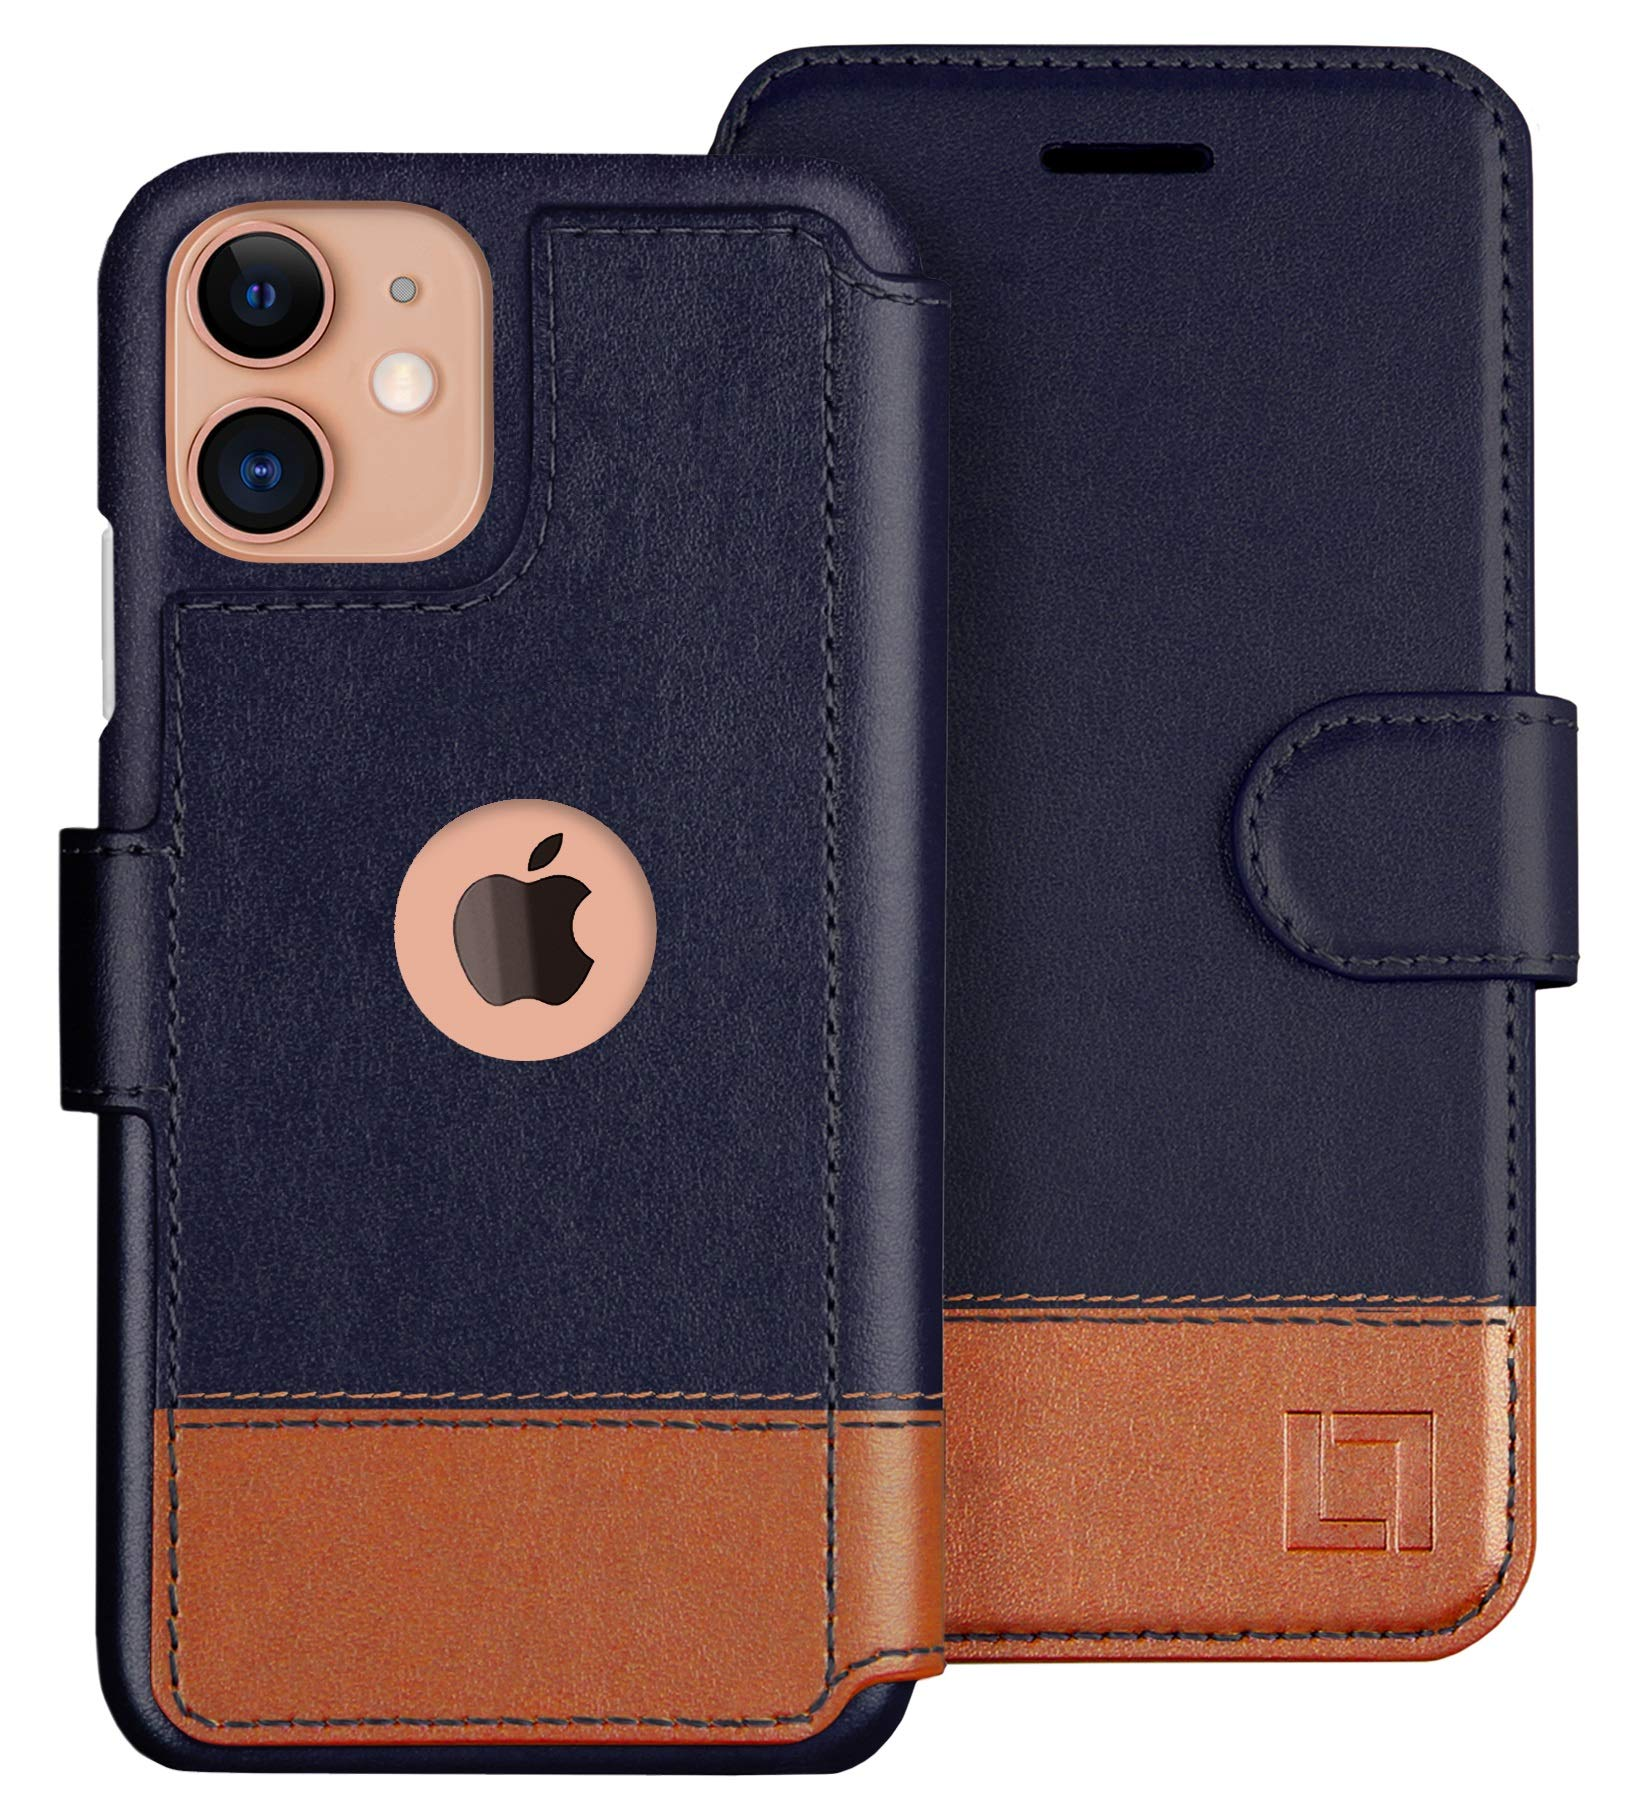 LUPA iPhone 11 Wallet Case -Slim iPhone 11 Flip Case with Credit Card Holder, for Women & Men, Faux Leather i Phone 11 Purse Cases with Magnetic Closure, Desert Sky